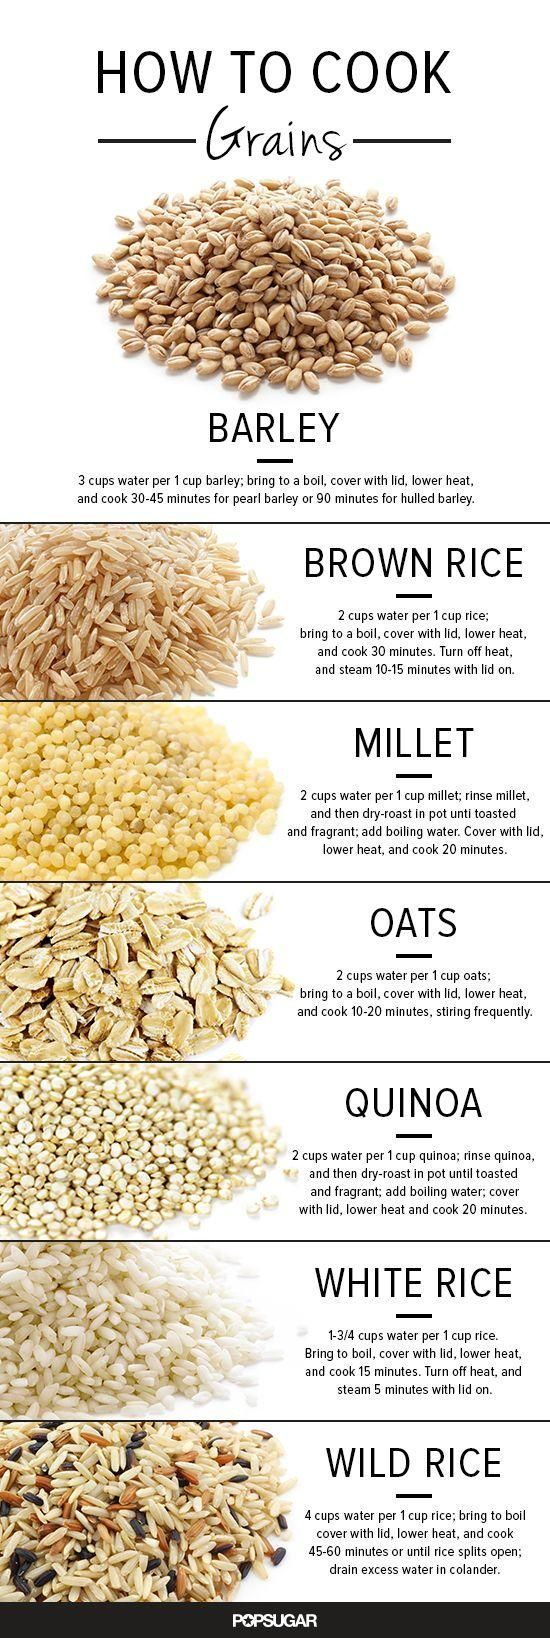 A guide to cooking everything from oats to rice! #useful